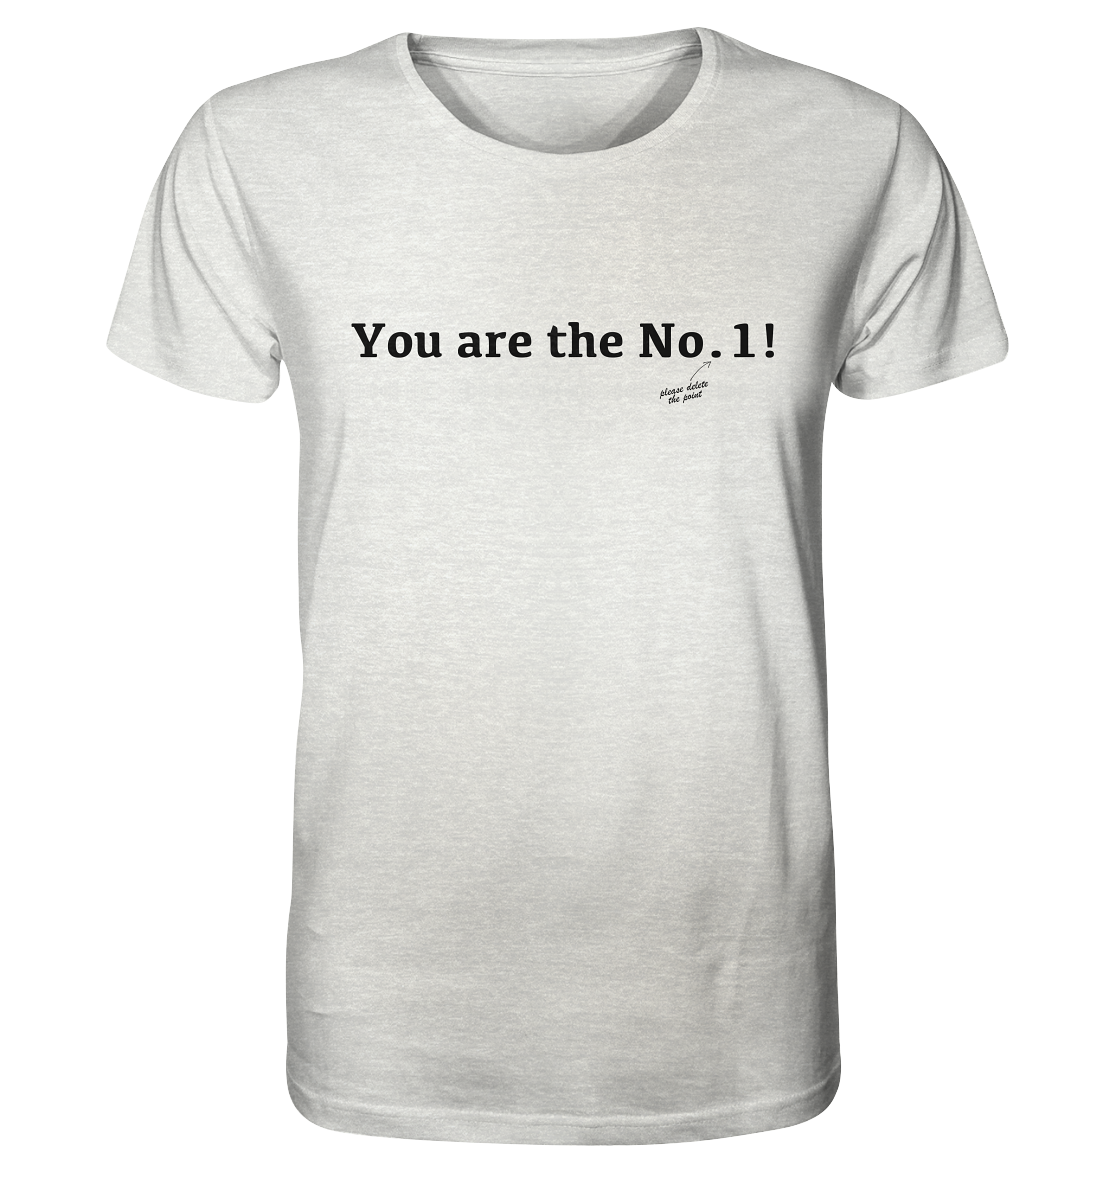 You are the No. 1! - Organic Shirt (meliert)